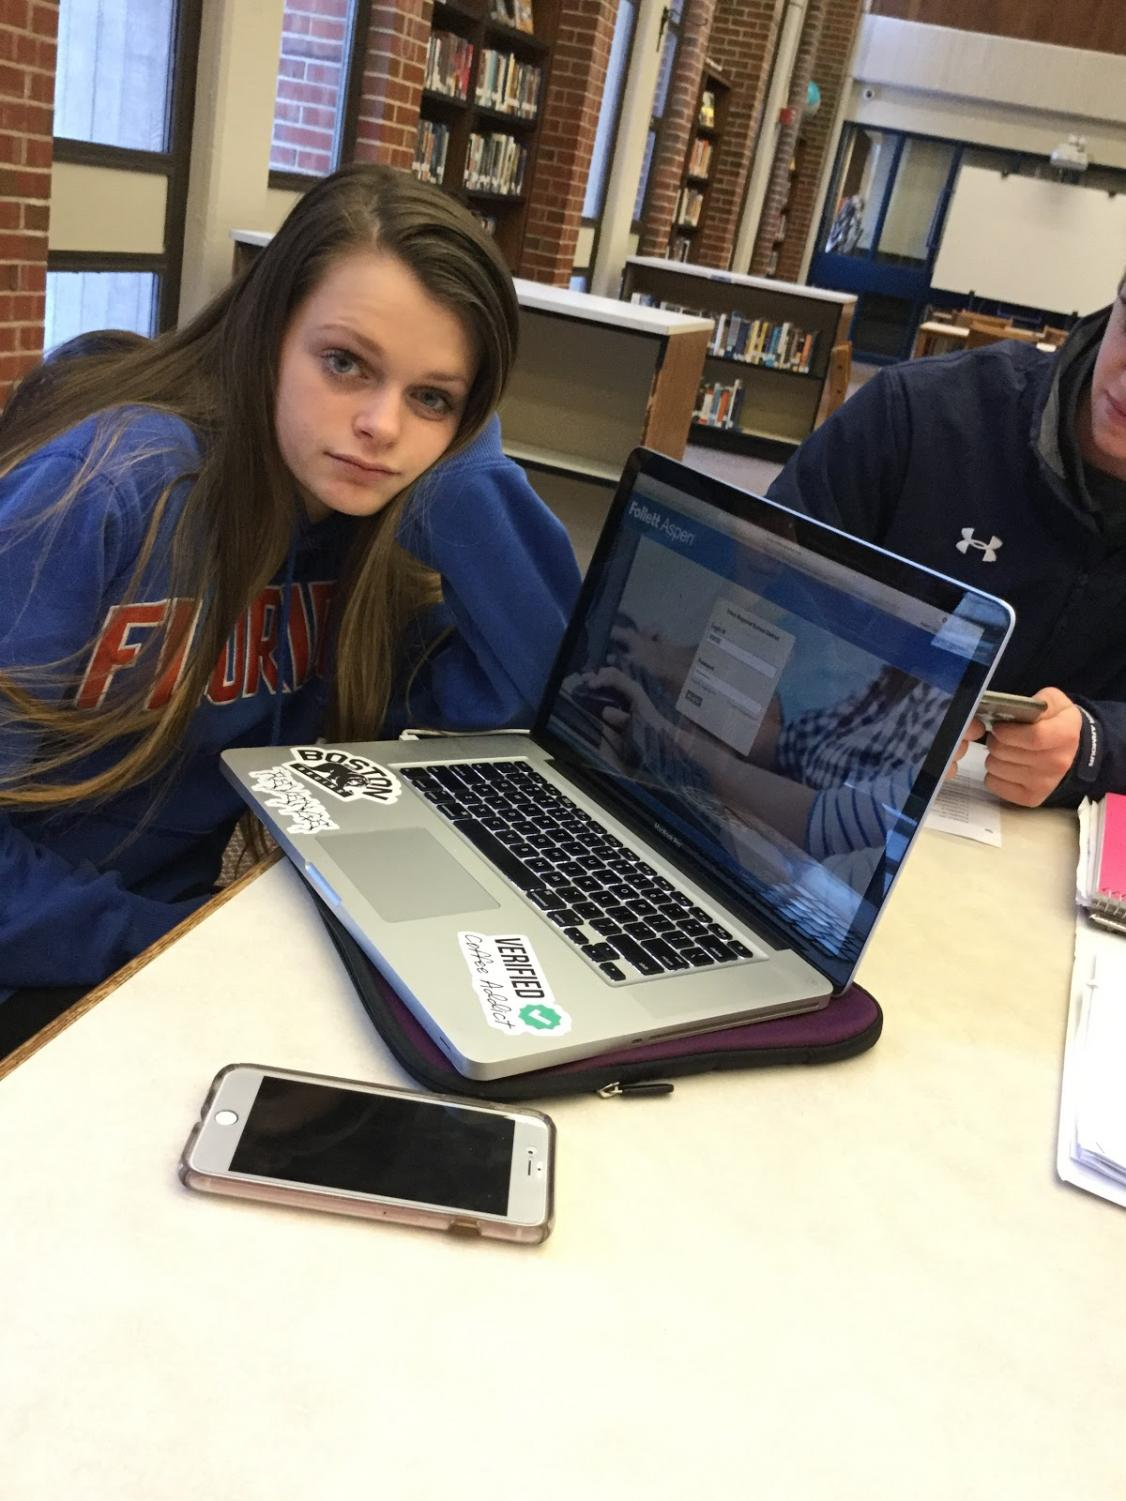 Junior Abbie Magee sits nervously in anticipation of checking her Aspen grades.